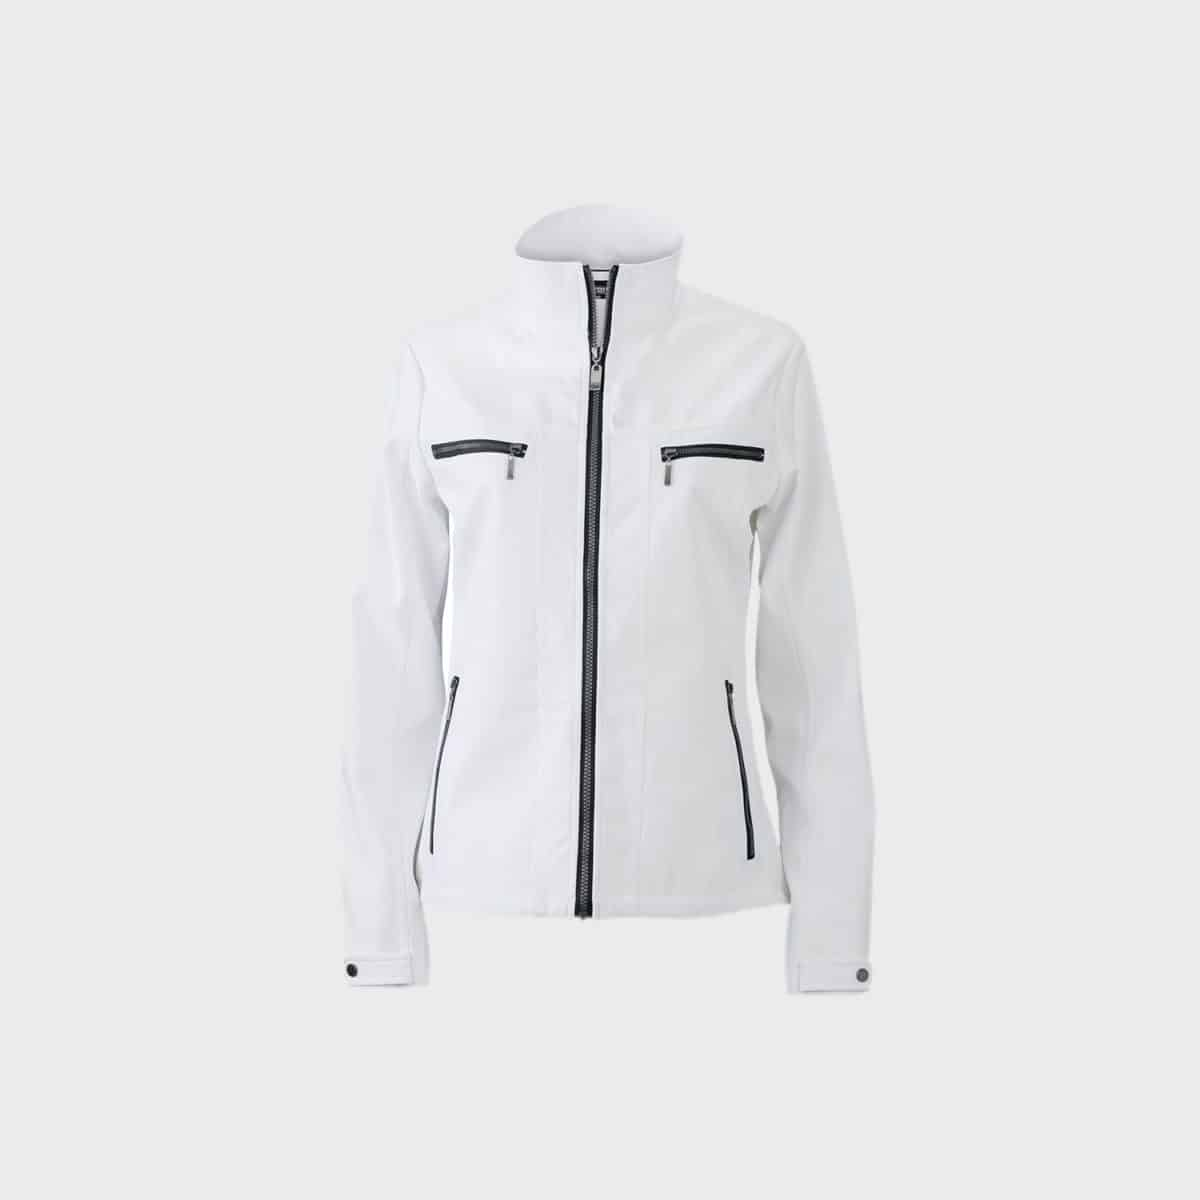 softshell-jacke-damen-tailored-white-kaufen-besticken_stickmanufaktur